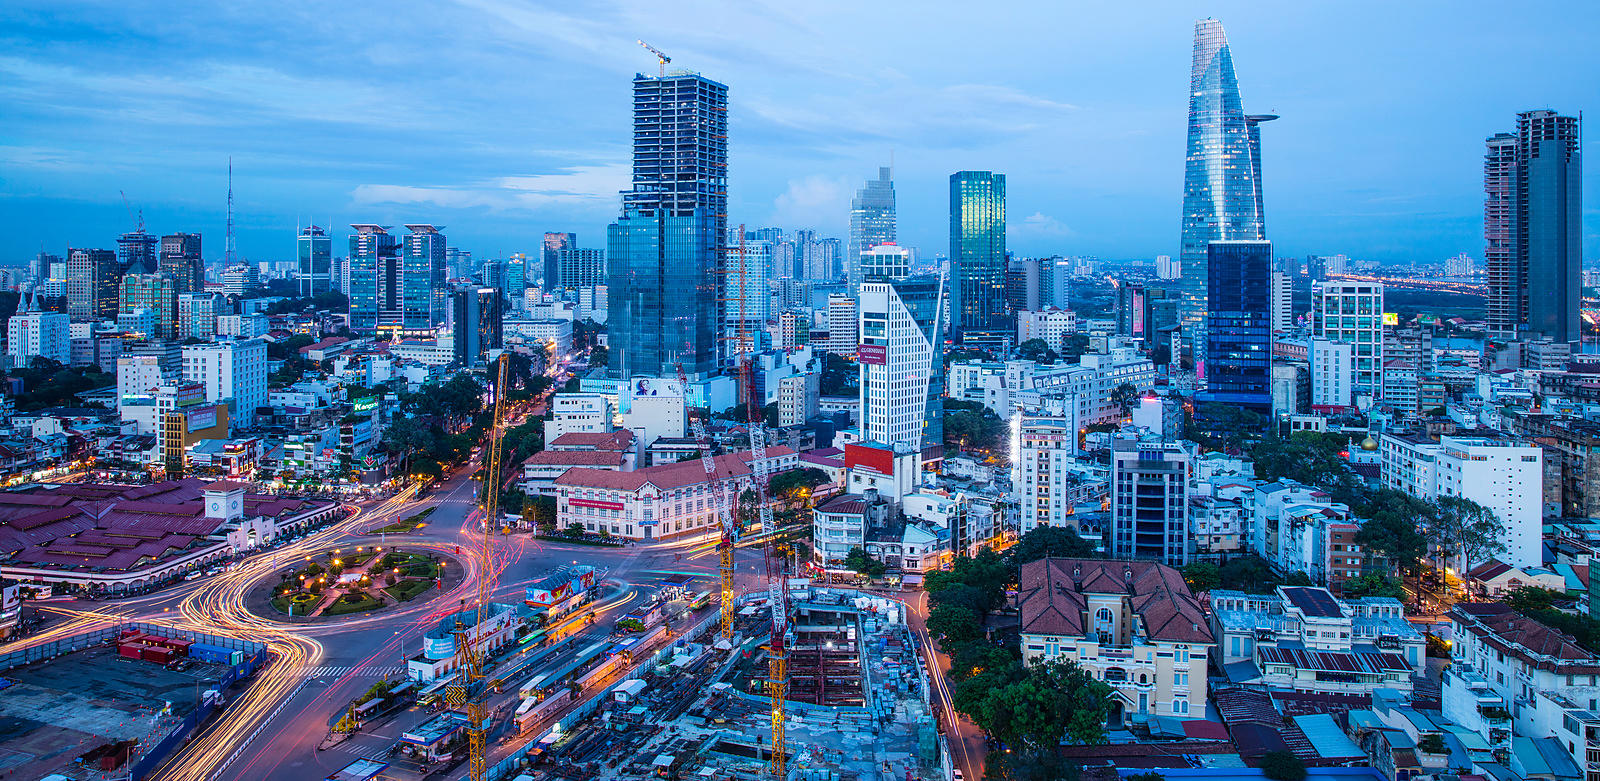 Saigon  No.2  2016.  Photographer: Neil Emmerson £975